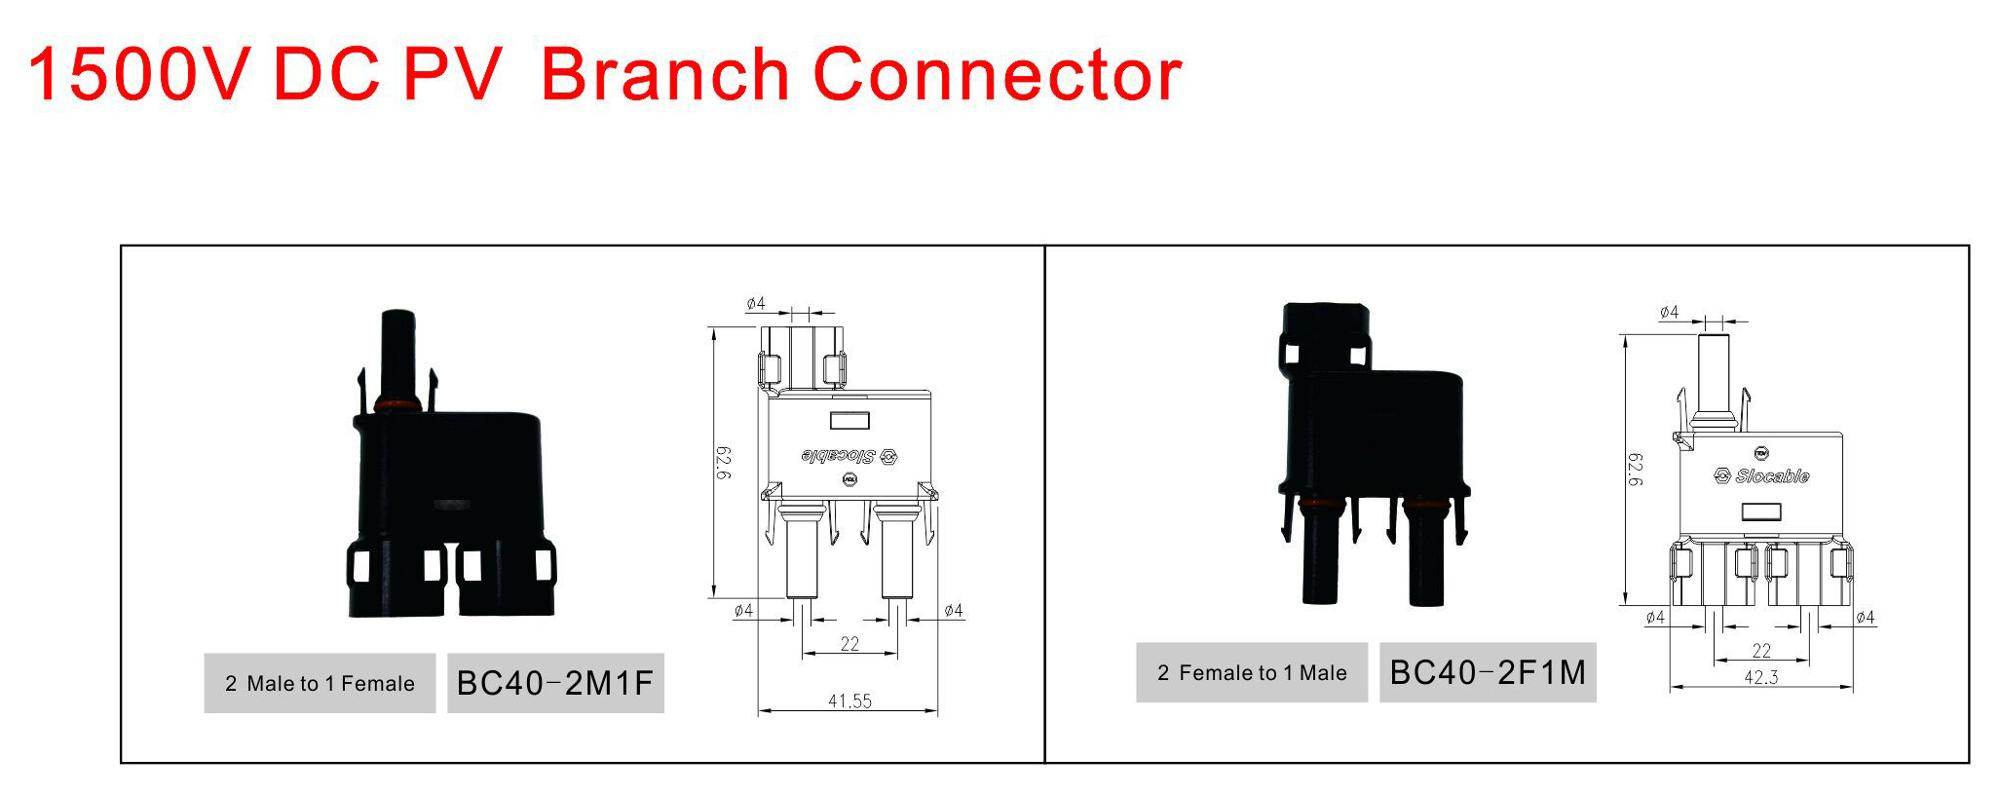 tuv approved safe mc4 t solar branch connector